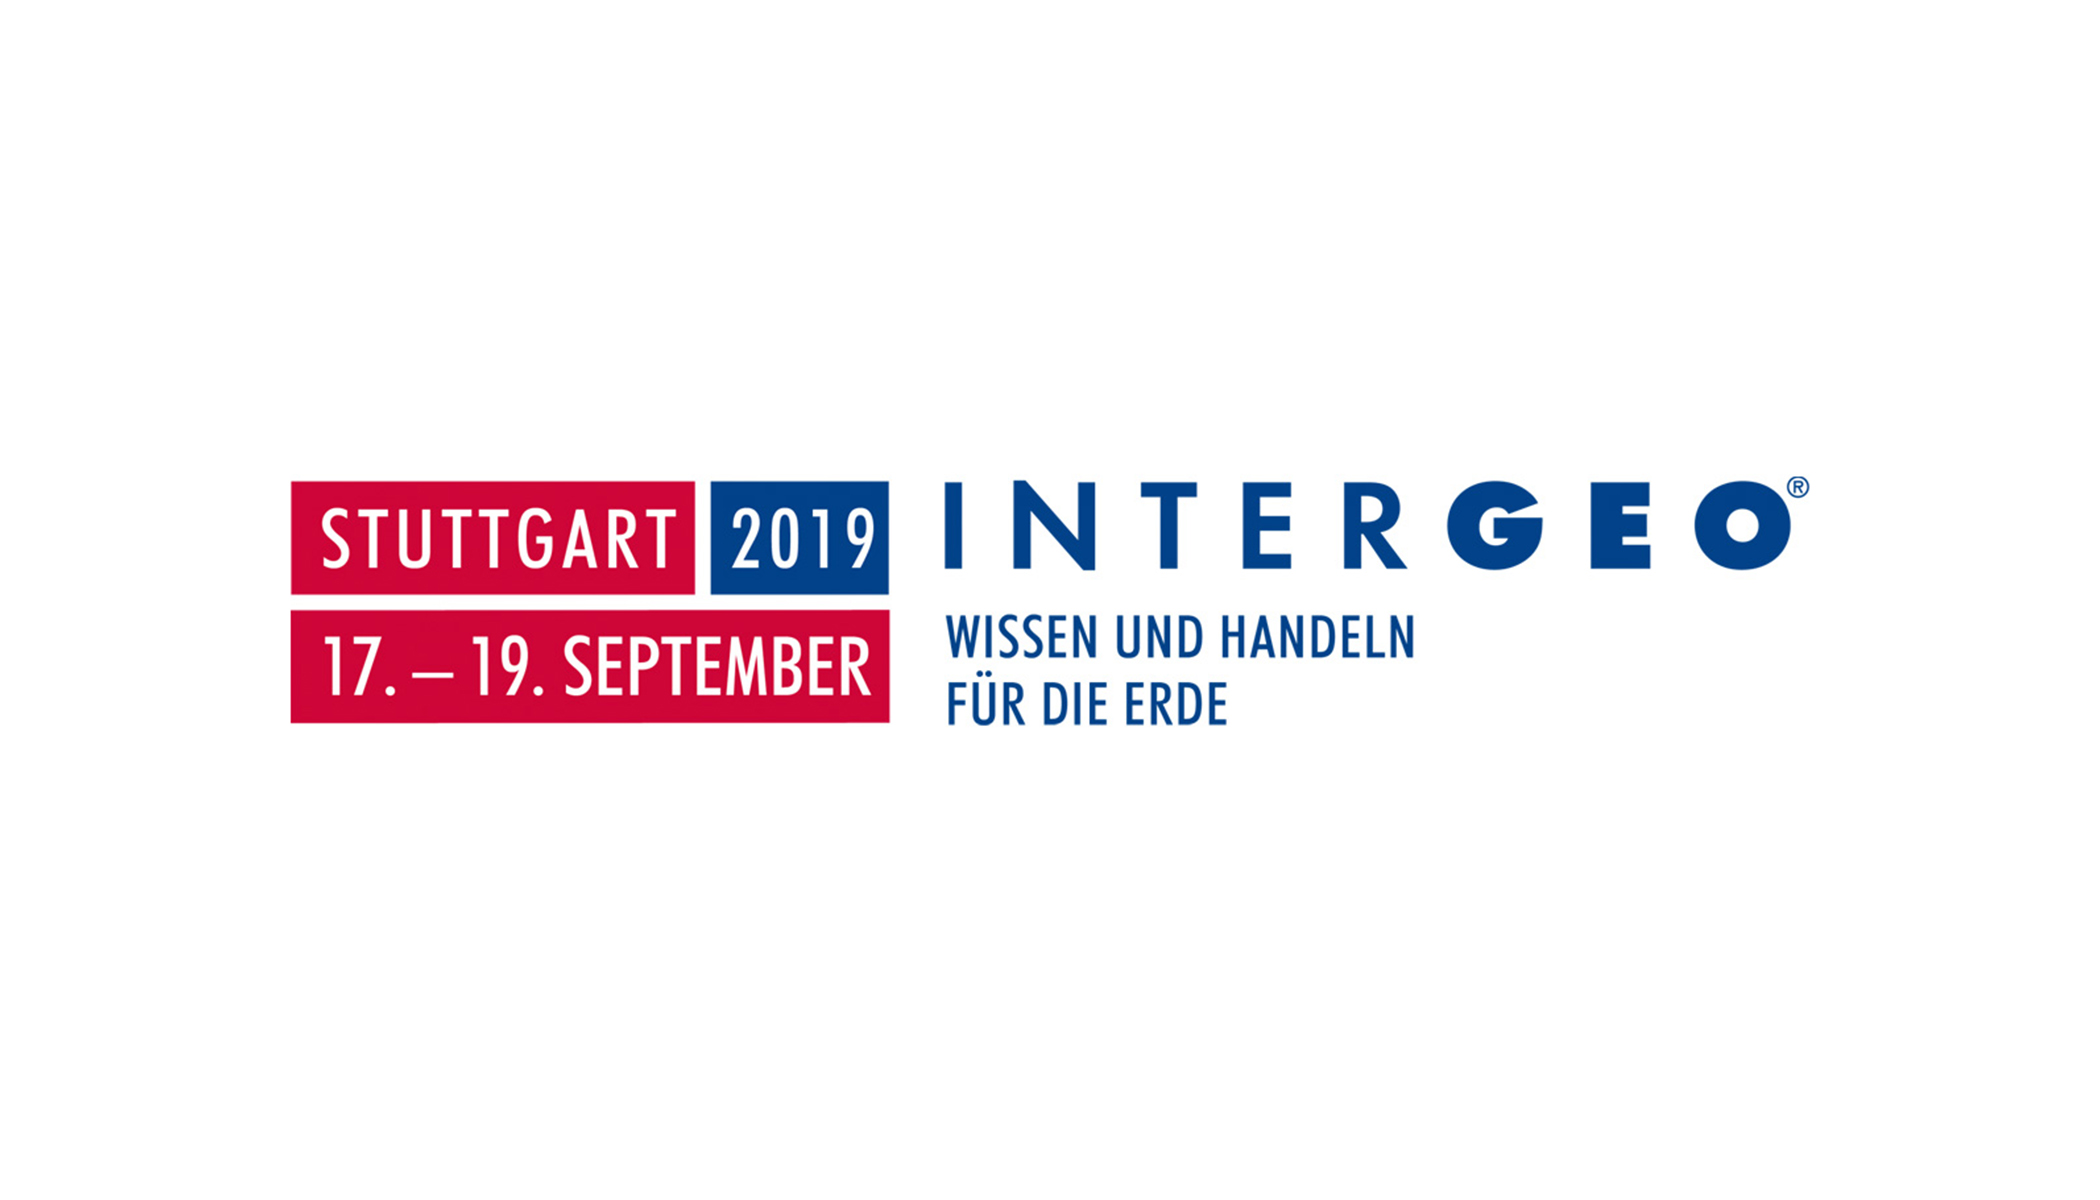 Pix4D at INTERGEO 2019